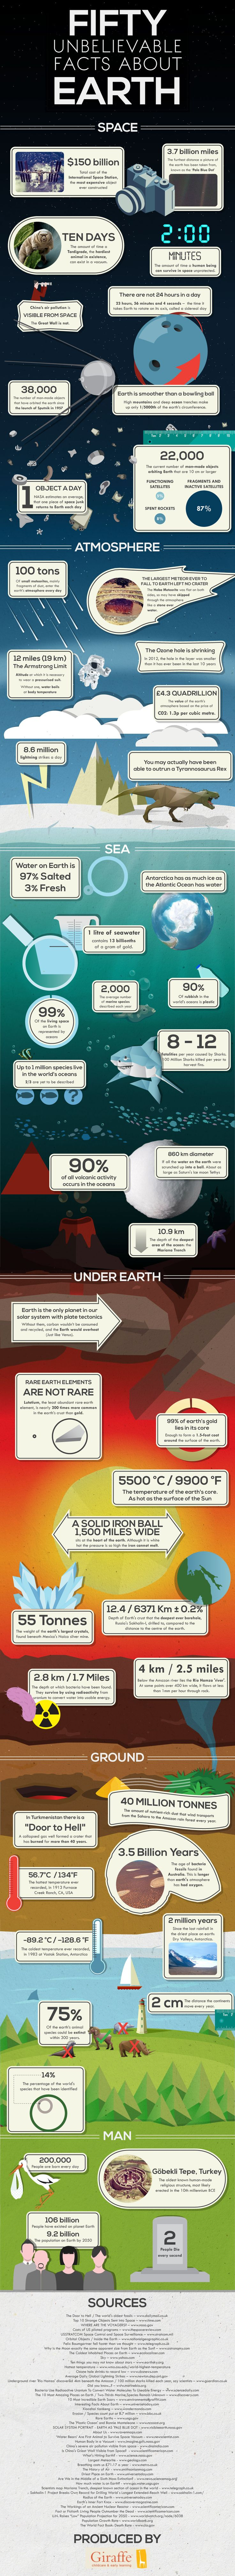 Fifty Unbelievable Facts About Earth  Source: Giraffe Childcare  Did you know that there are 8.6 million lightning strikes every day? Or that Earth is actually smoother than a bowling ball? There are a lot of really cool things about earth you might not know packed into this infographic. Check it out!